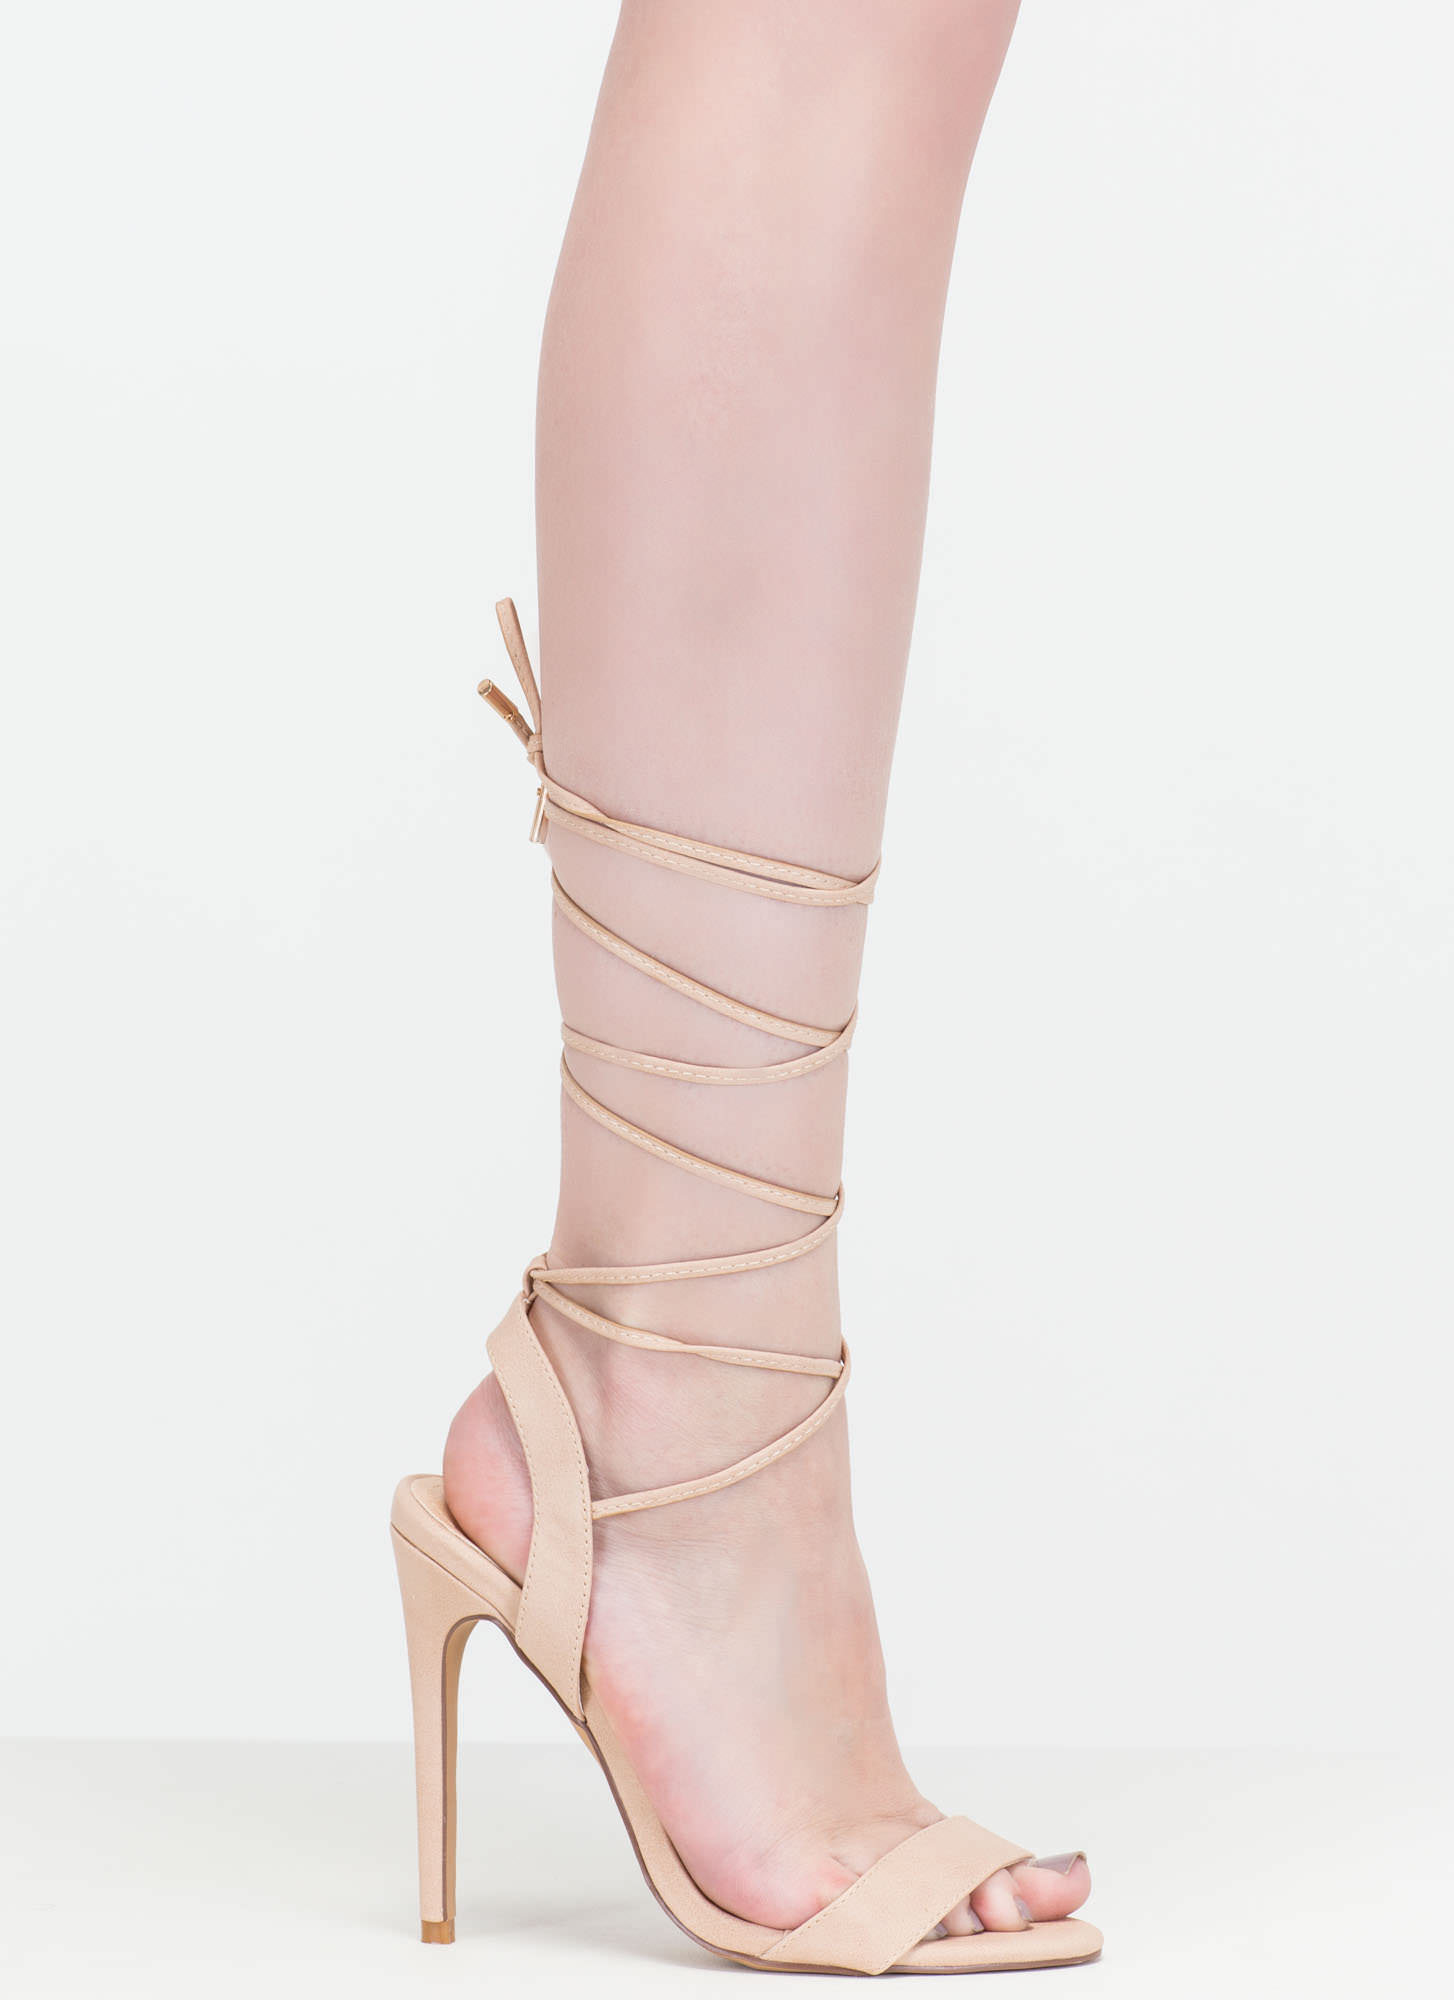 At Long Last Lace-Up Faux Leather Heels NUDE